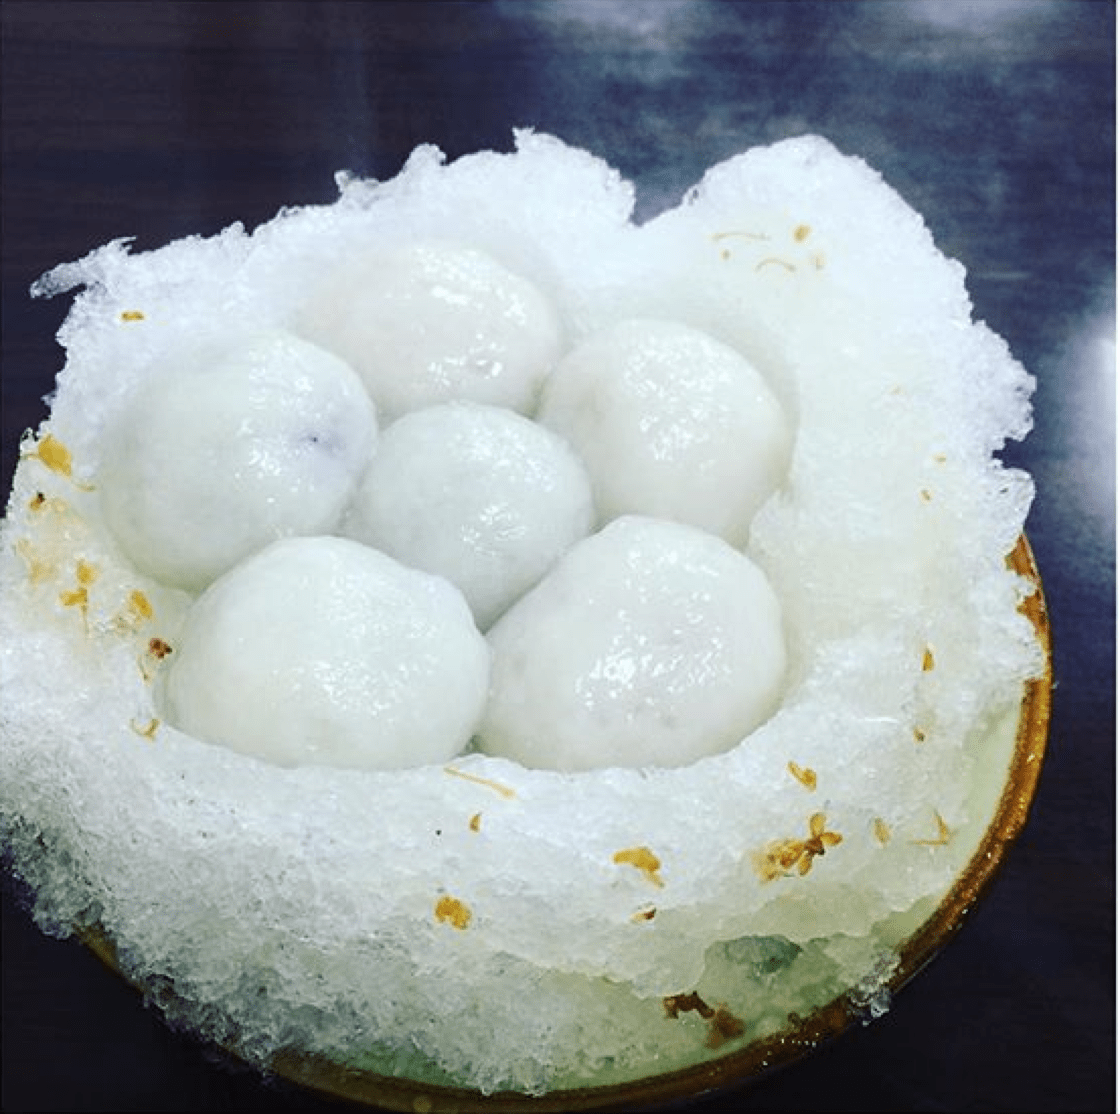 Tangyuan on the ice is the signature dish at  Yu Pin Yuan Iced and Hot Tangyuan. (Picture:  Yu Pin Yuan Iced and Hot Tangyuan Facebook)